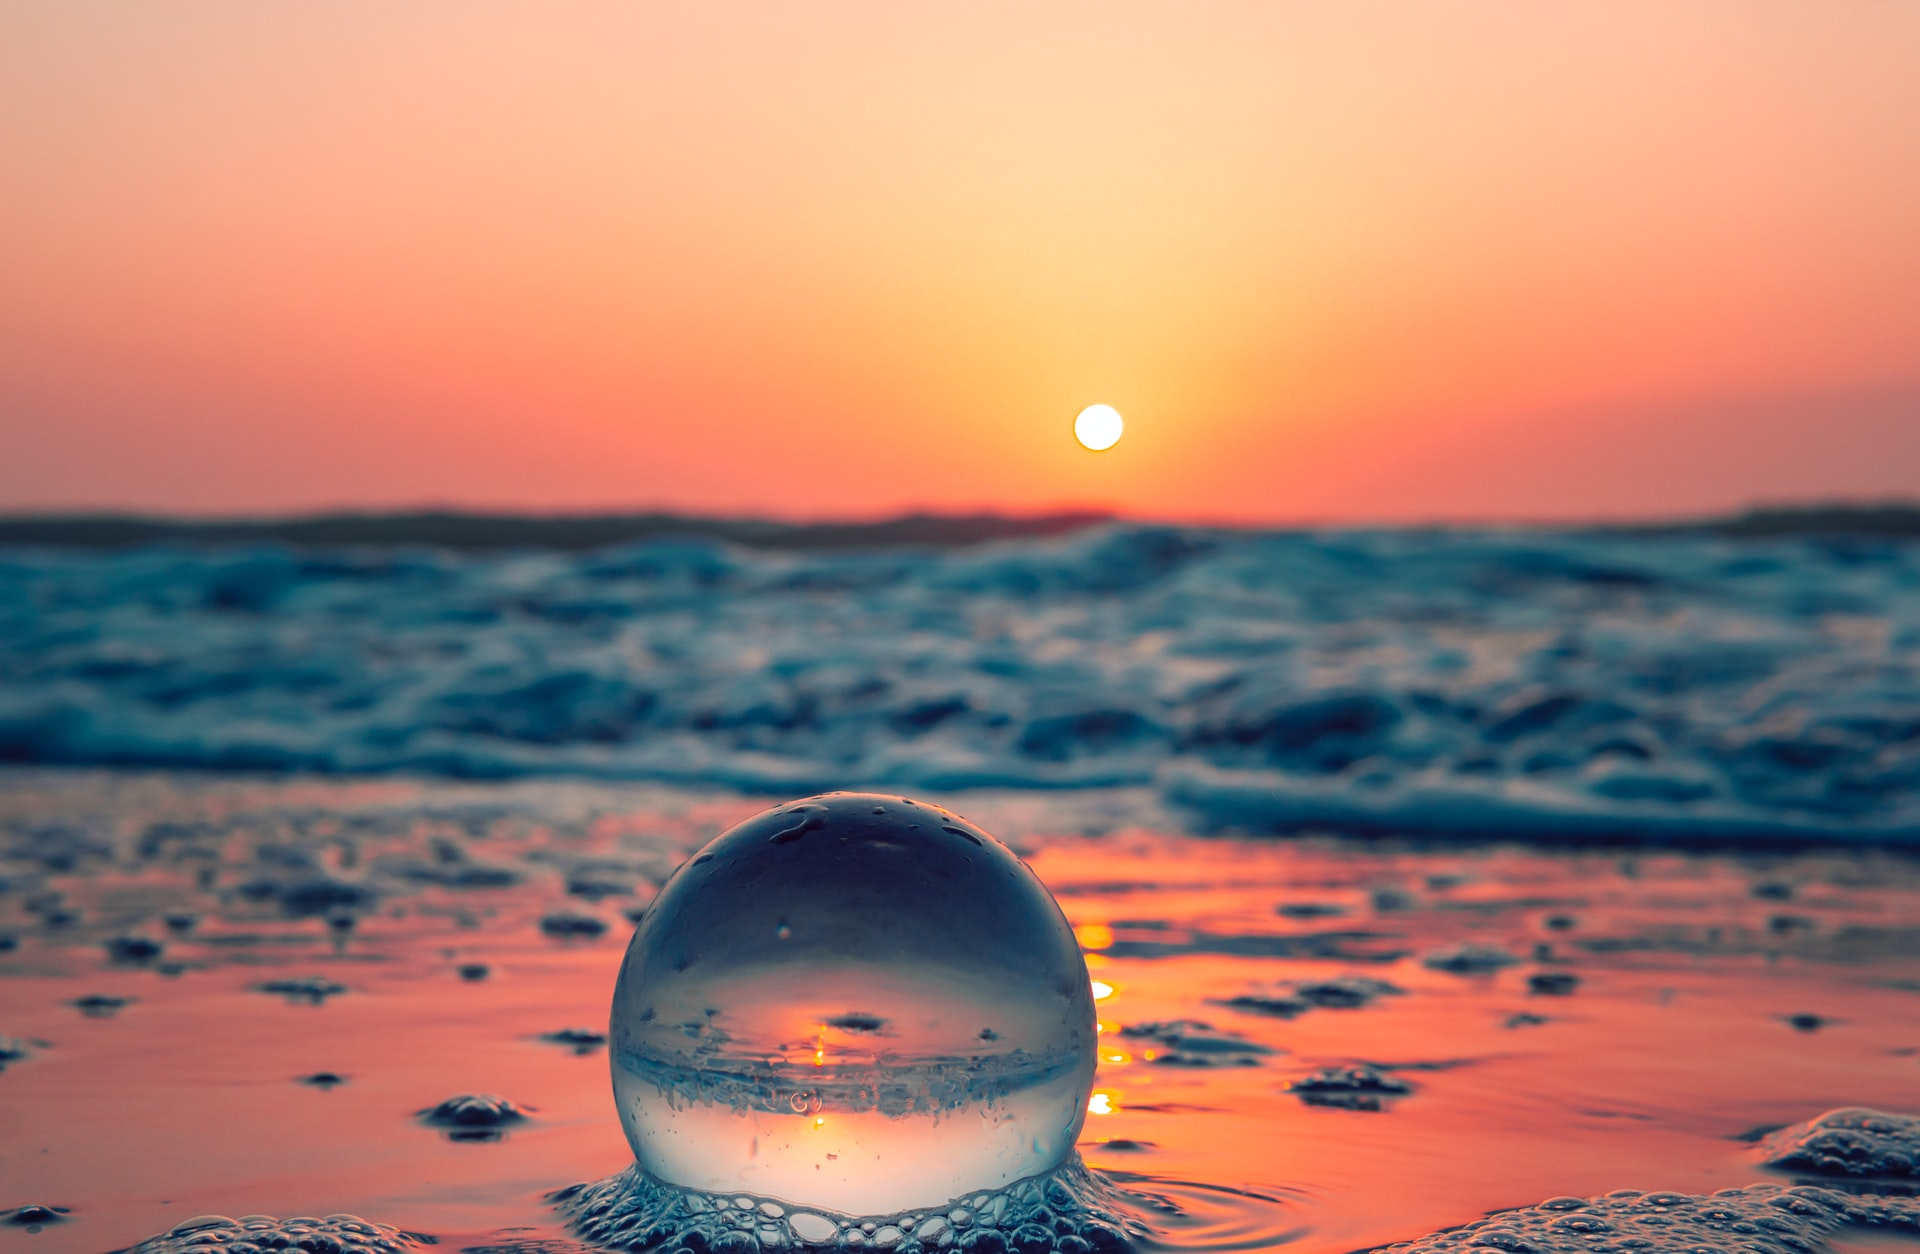 A foamy bubble on the beach, with the ocean in the background and the sun setting